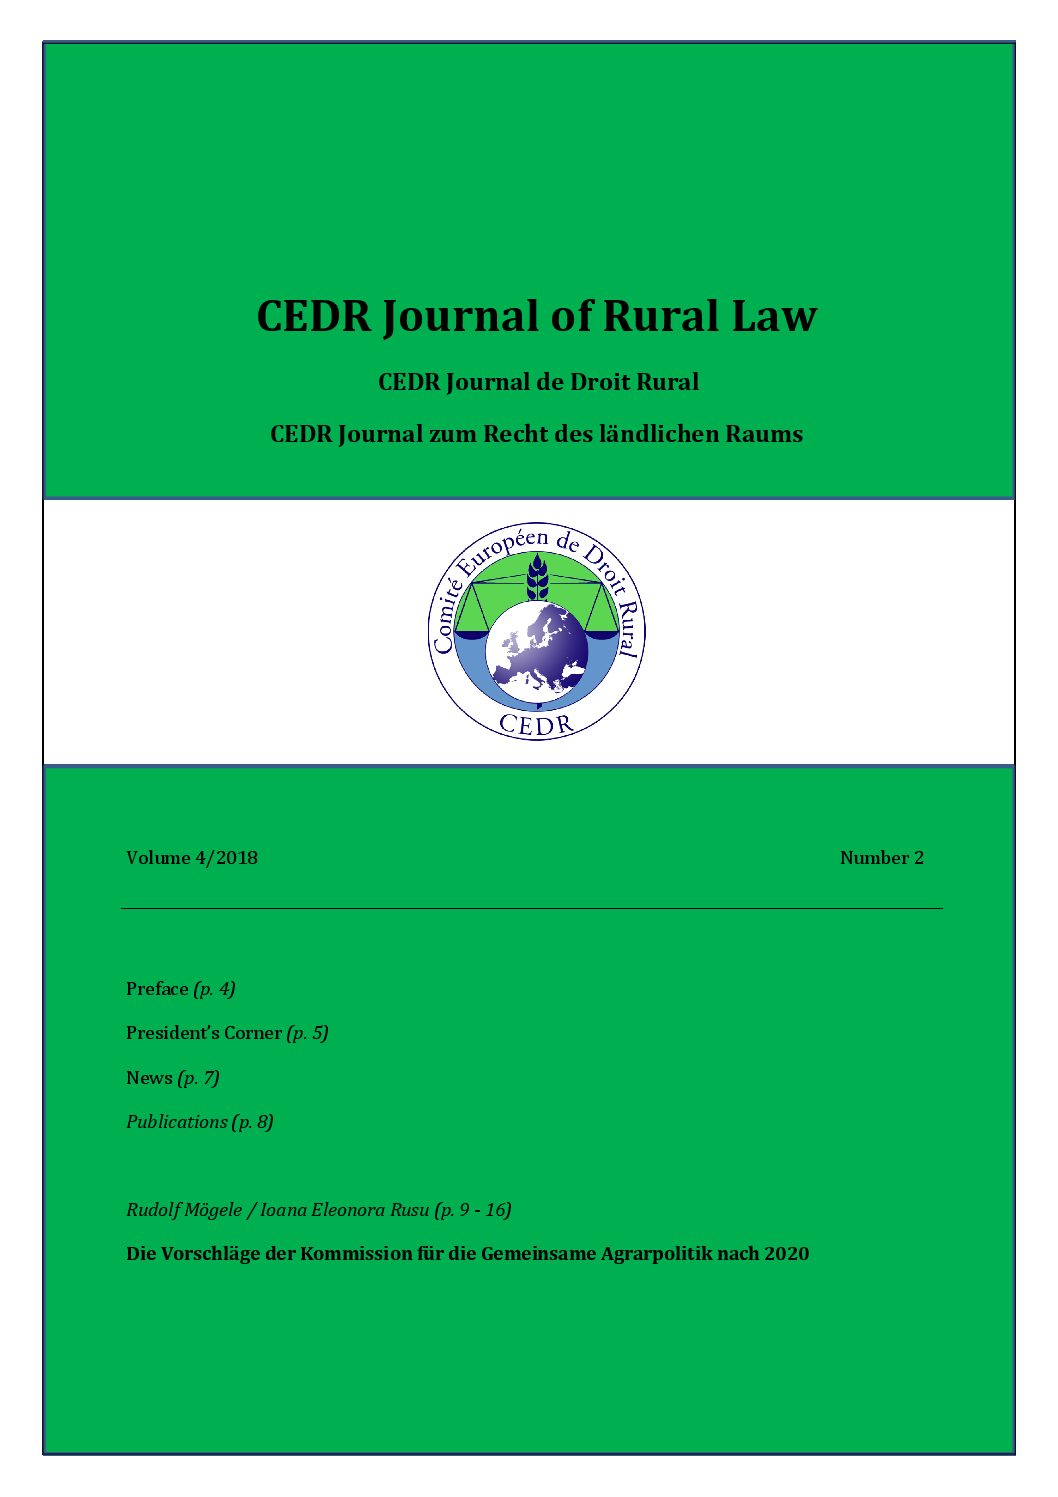 Journal of Rural Law Vol.4 N°2, 2018